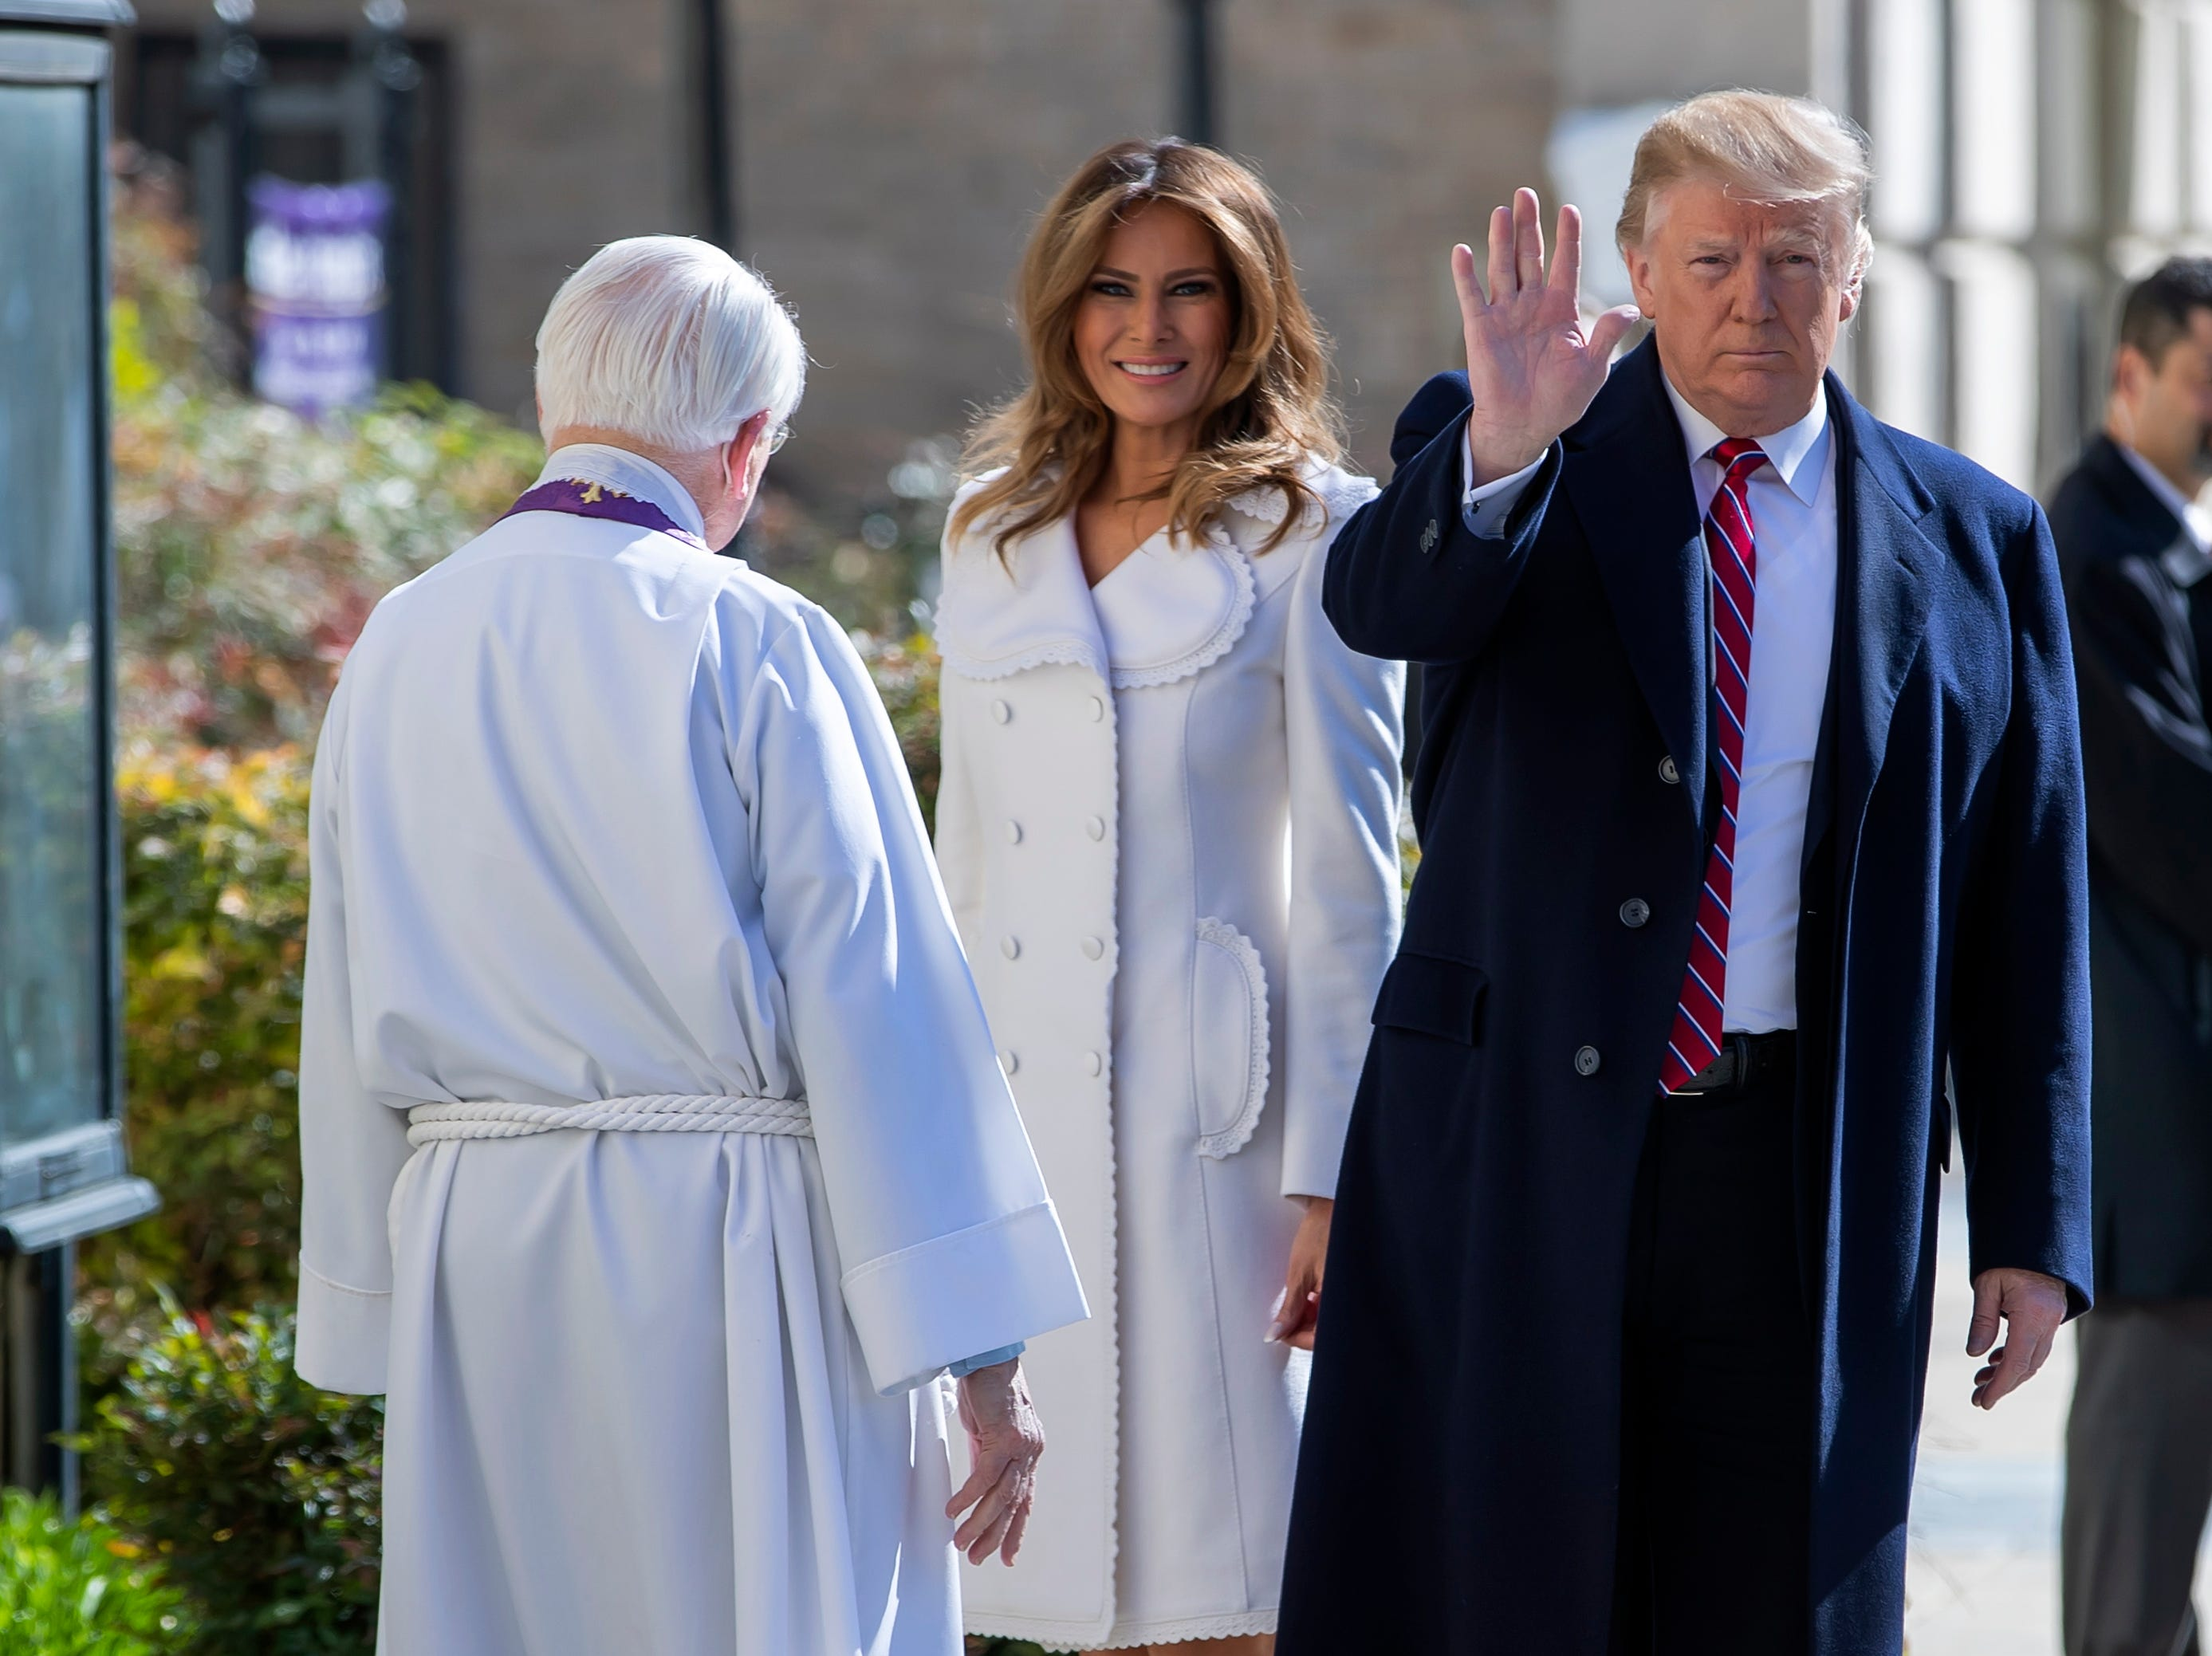 President Donald J. Trump and First Lady Melania Trump are greeted by Reverend W. Bruce McPherson as they attend services at St. John's Episcopal Church in Washington, DC on St. Patrick's Day.